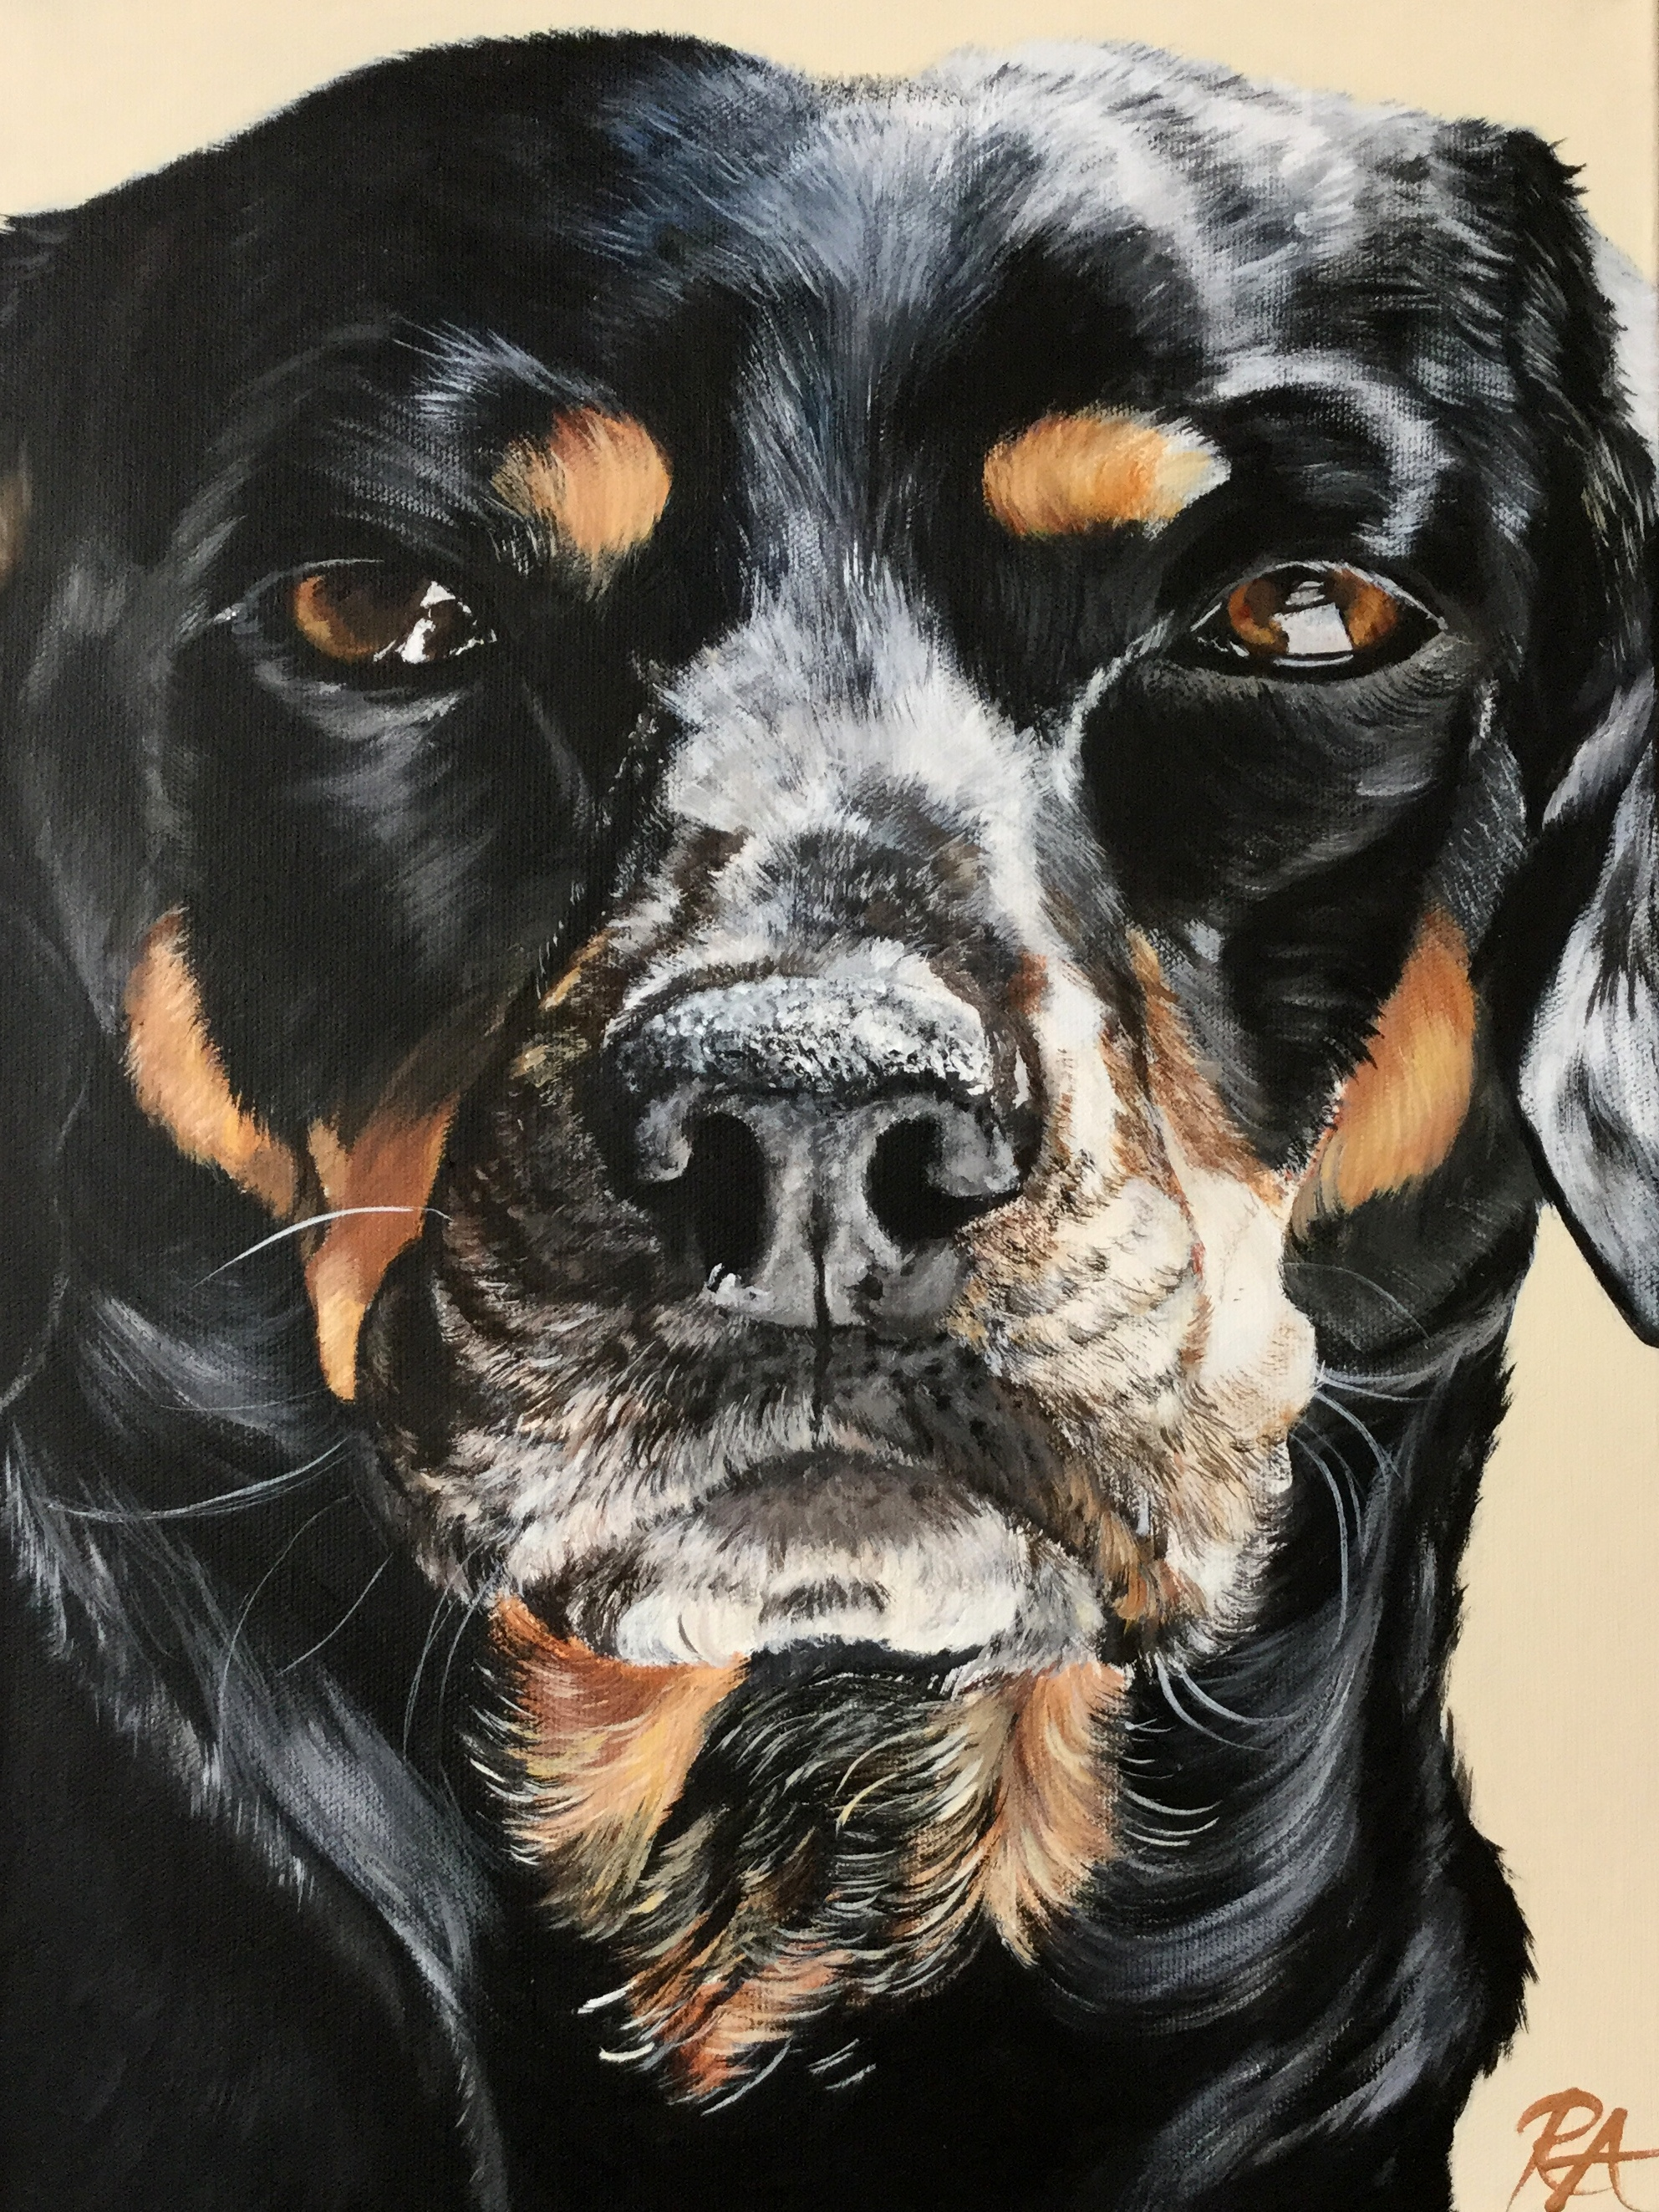 Pet portraits with soul. - Nose Prints fine art portraits capture the emotion, personality, and spirit of your beloved animal.